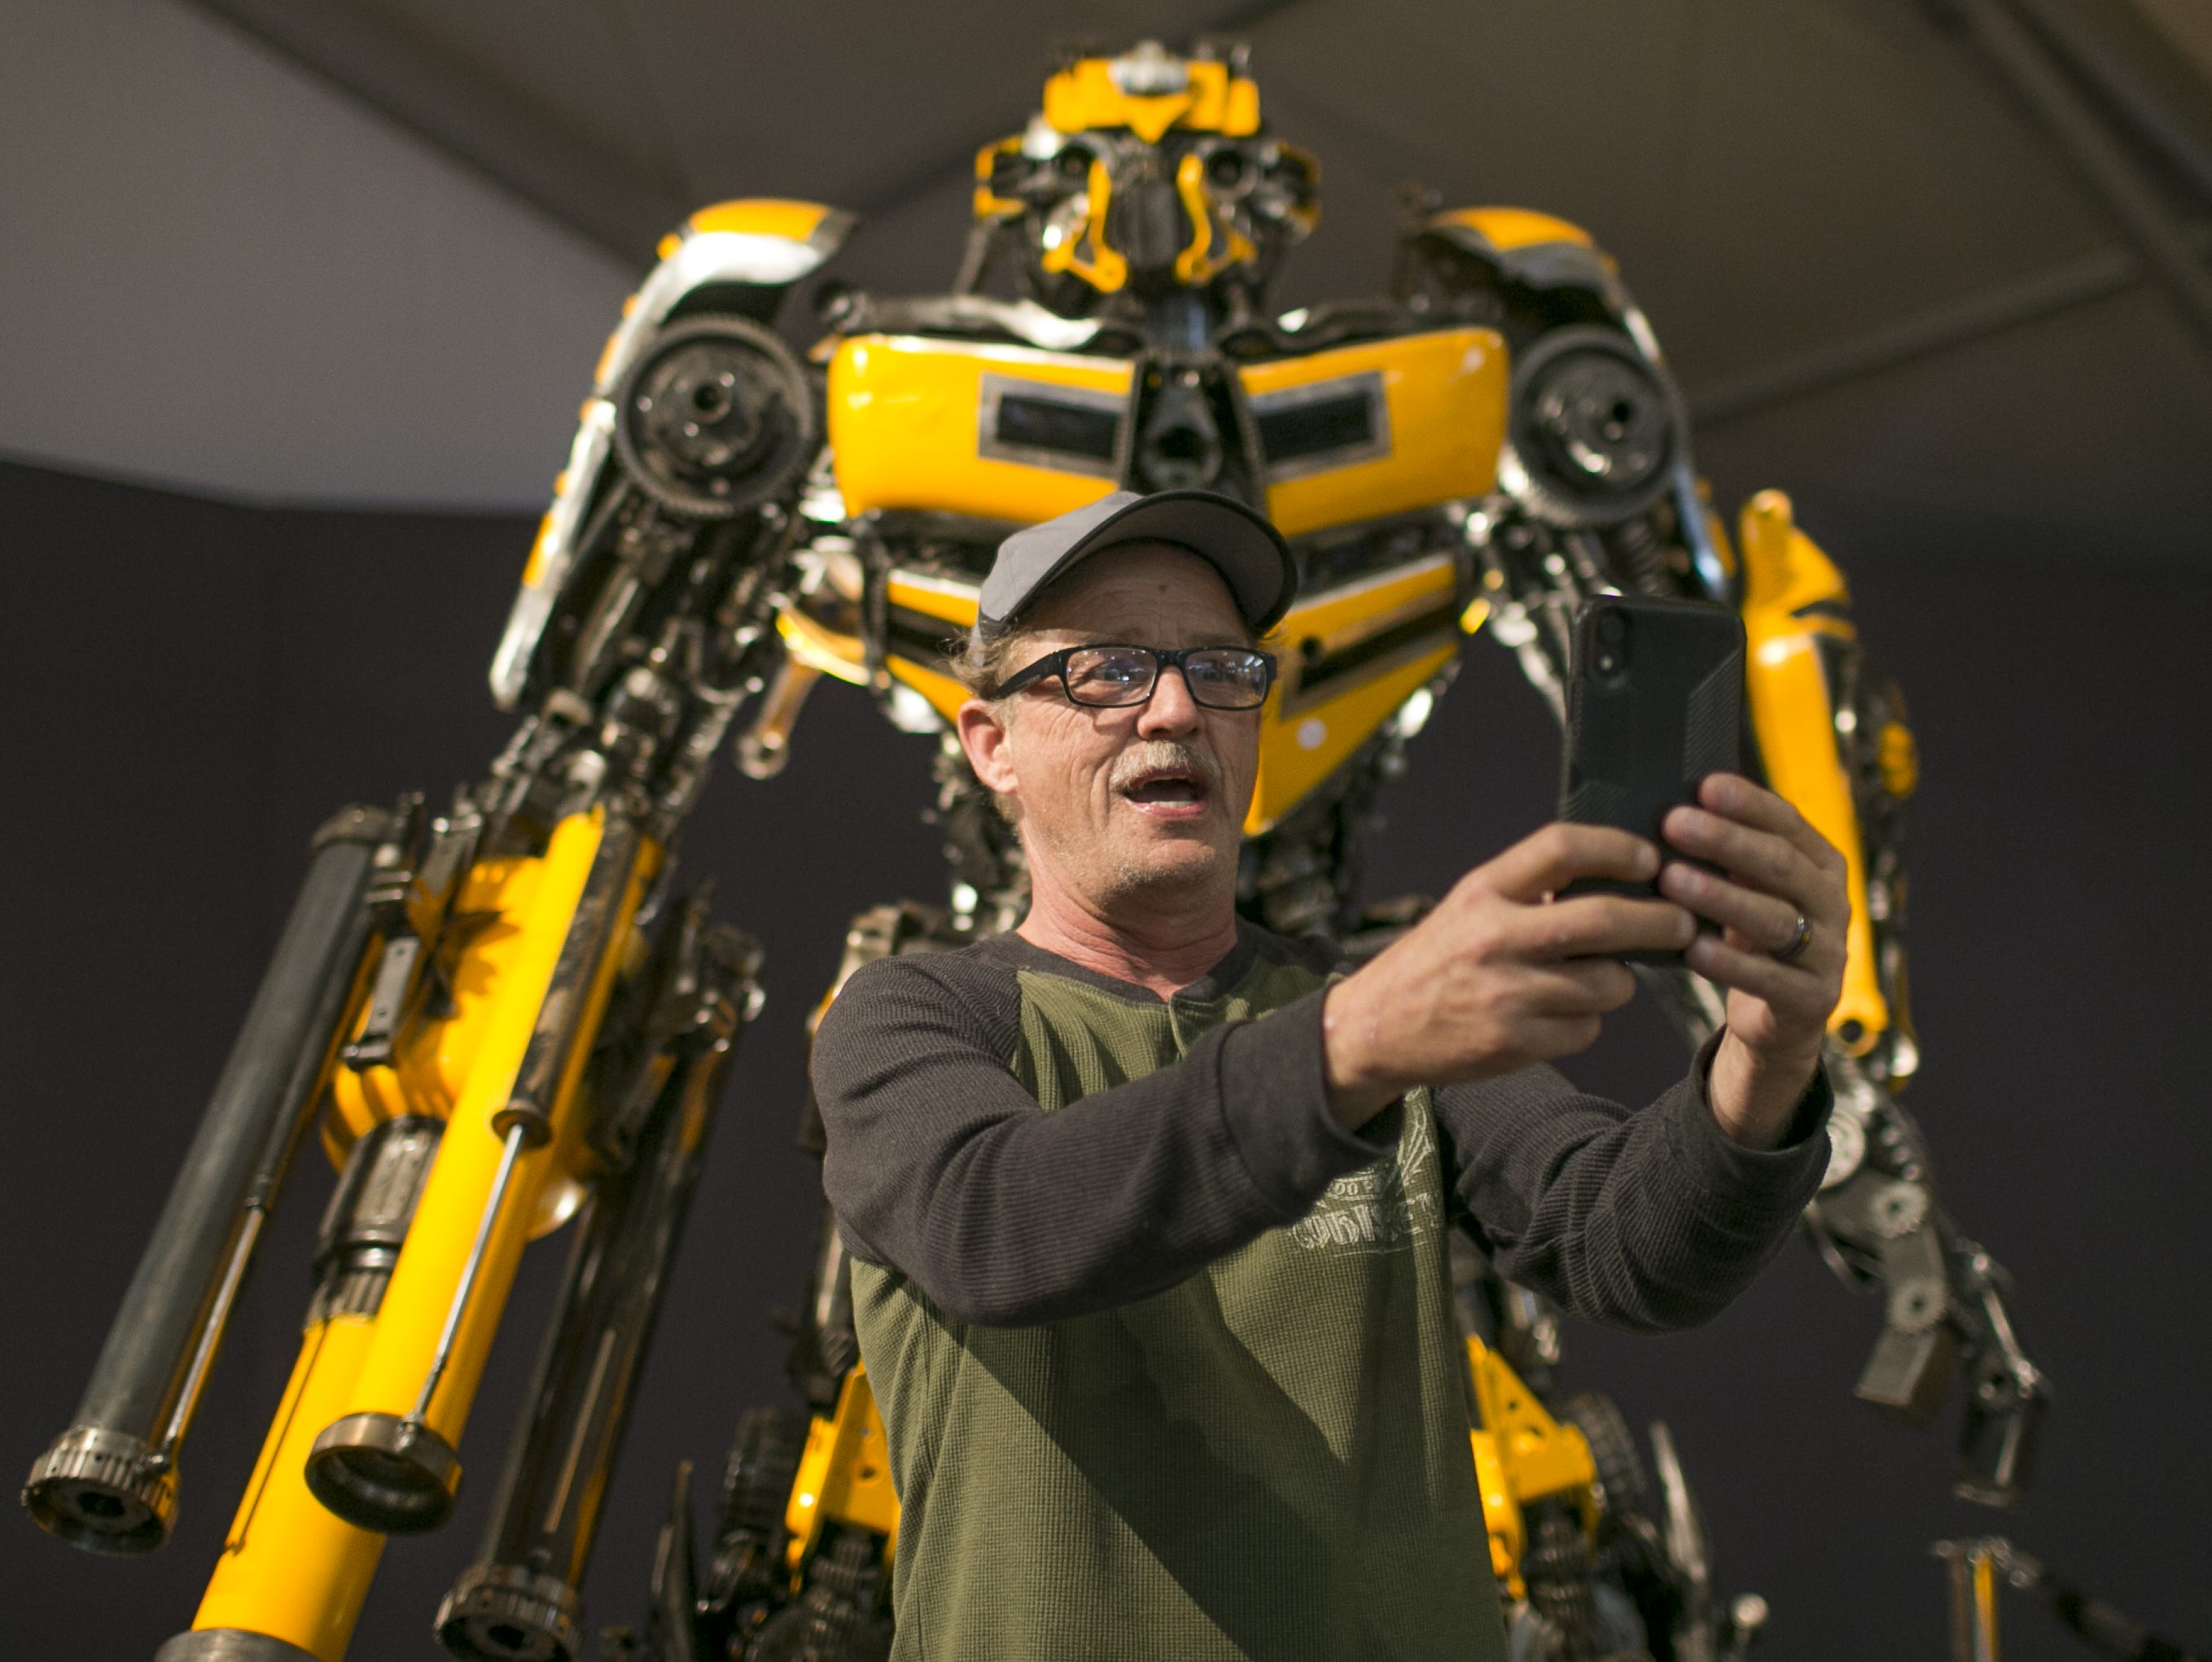 Dwayne Magill takes a selfie with a statue of Bumblebee from the Transformers movie franchise at the Barrett-Jackson Car Auction at WestWorld in Scottsdale, Arizona, on Jan. 16, 2019.